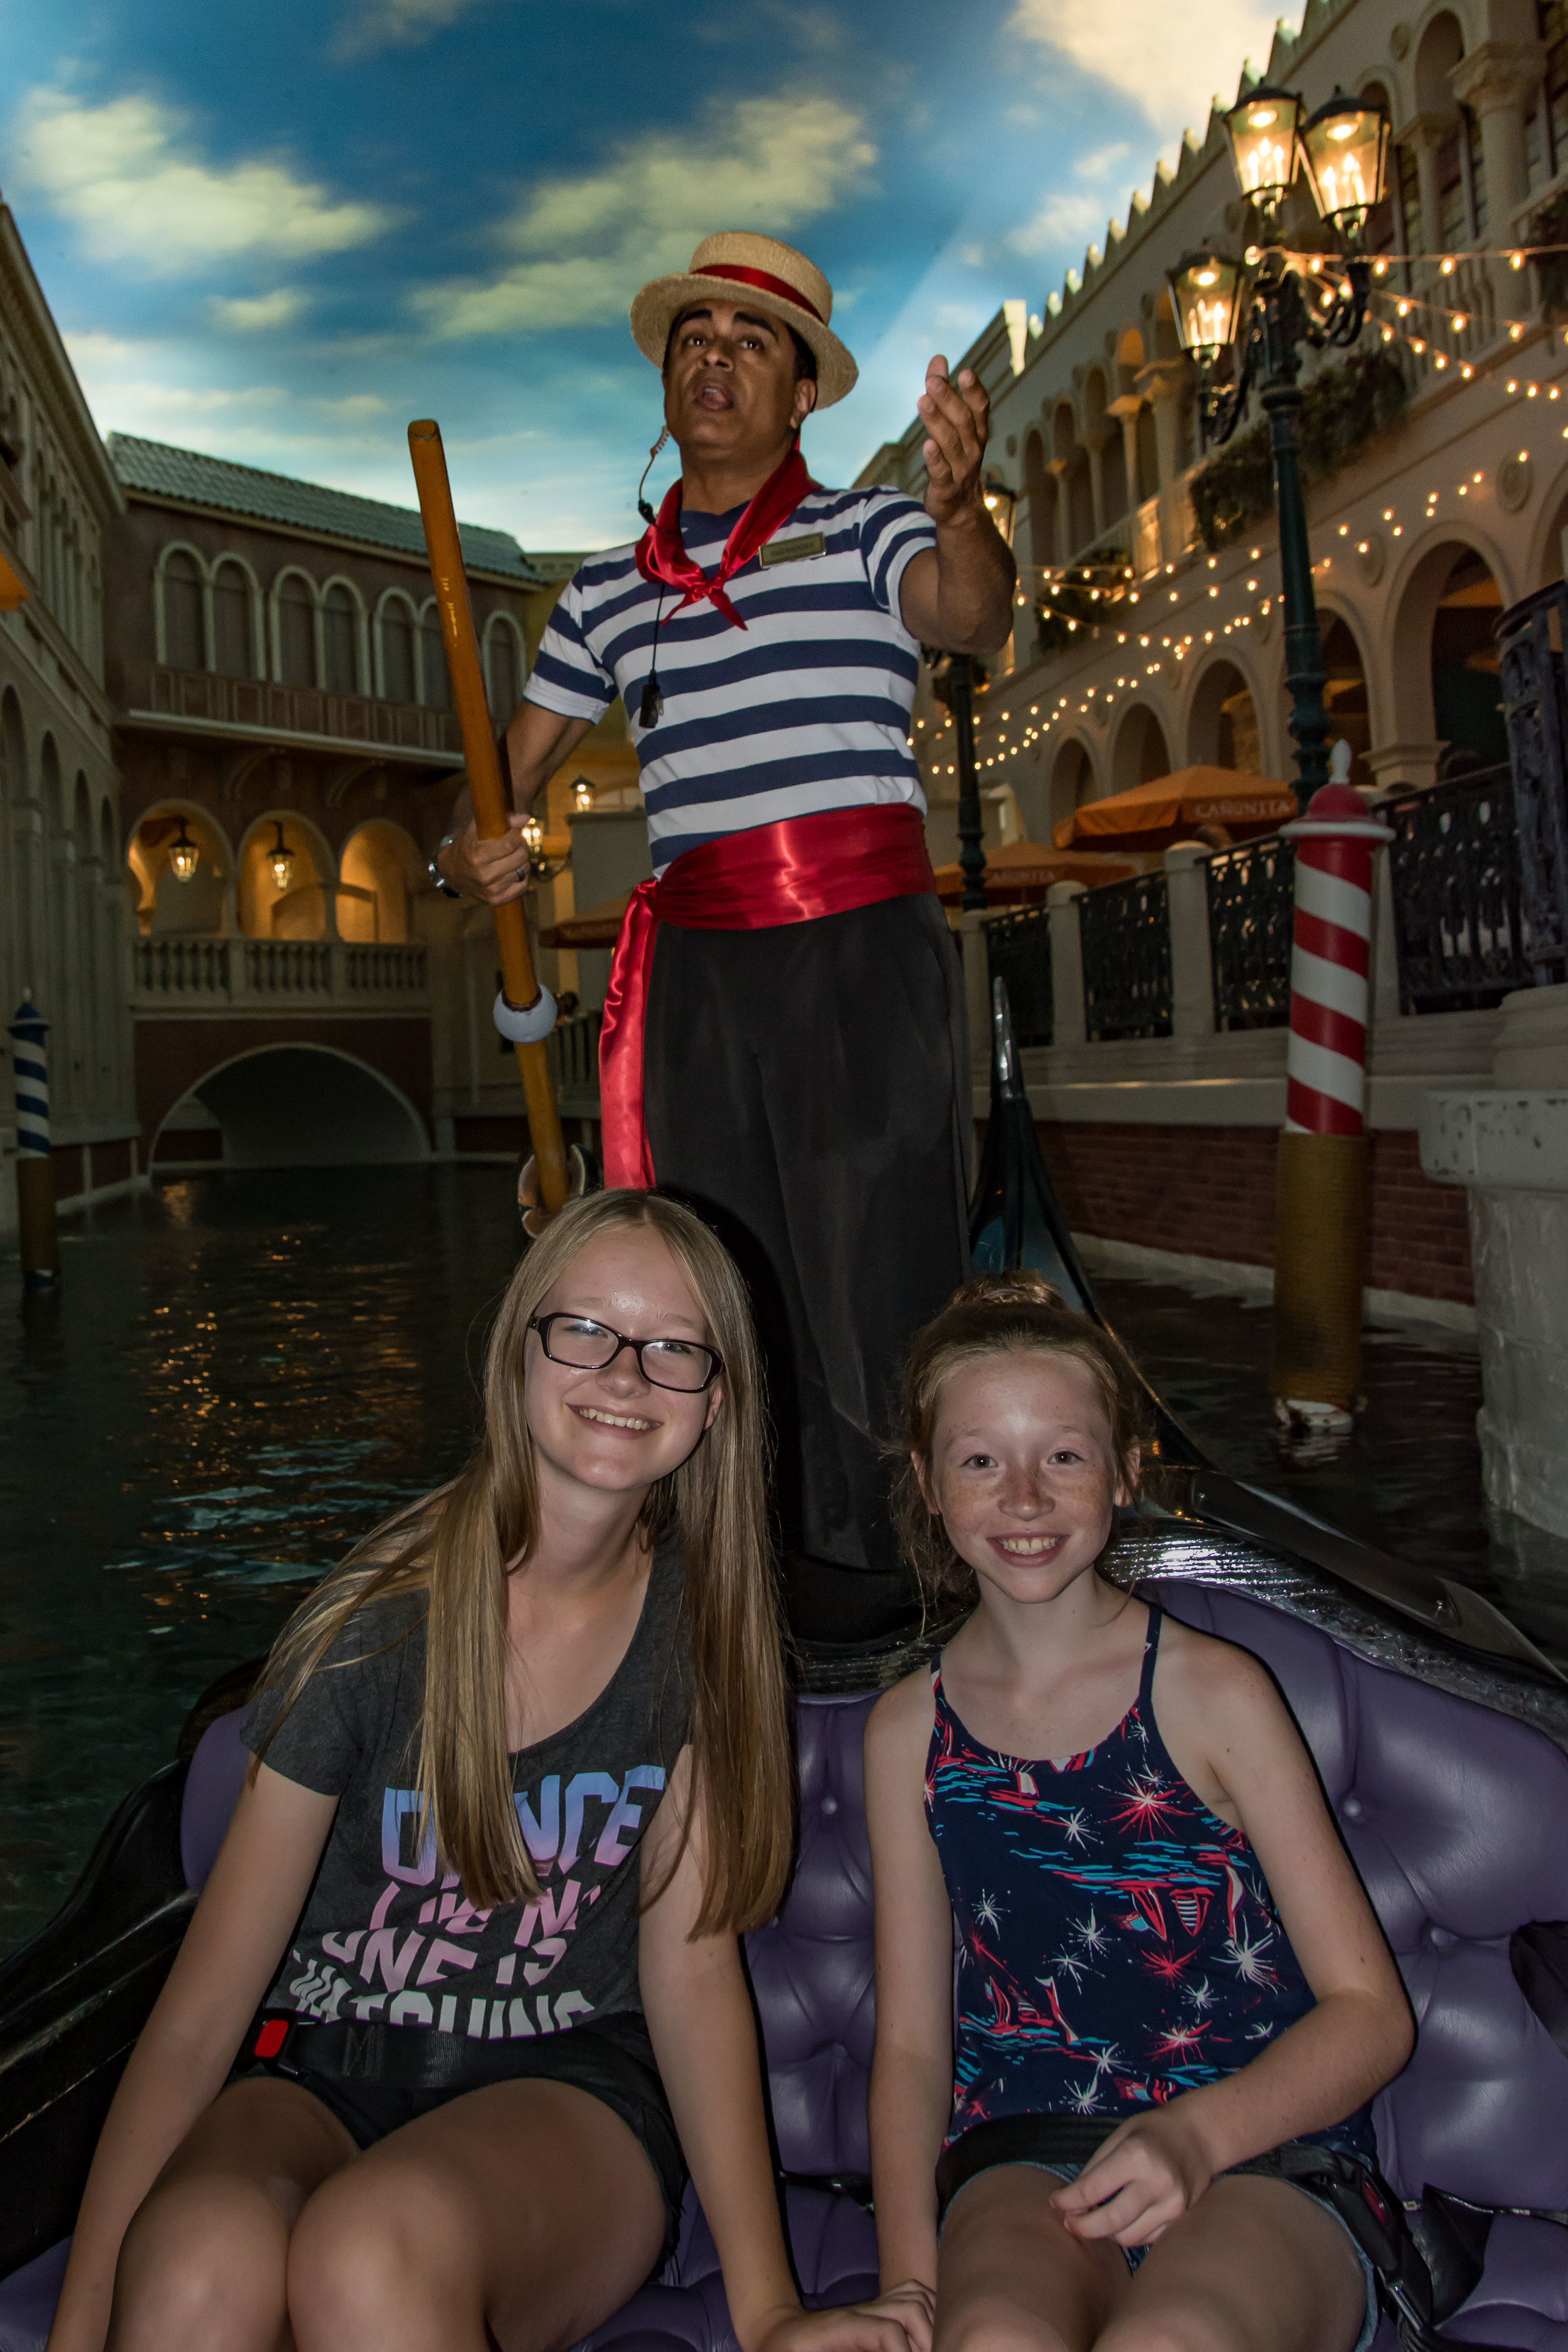 The girls being serenaded by Salvatore in our gondola ride, The Venetian, Las Vegas.